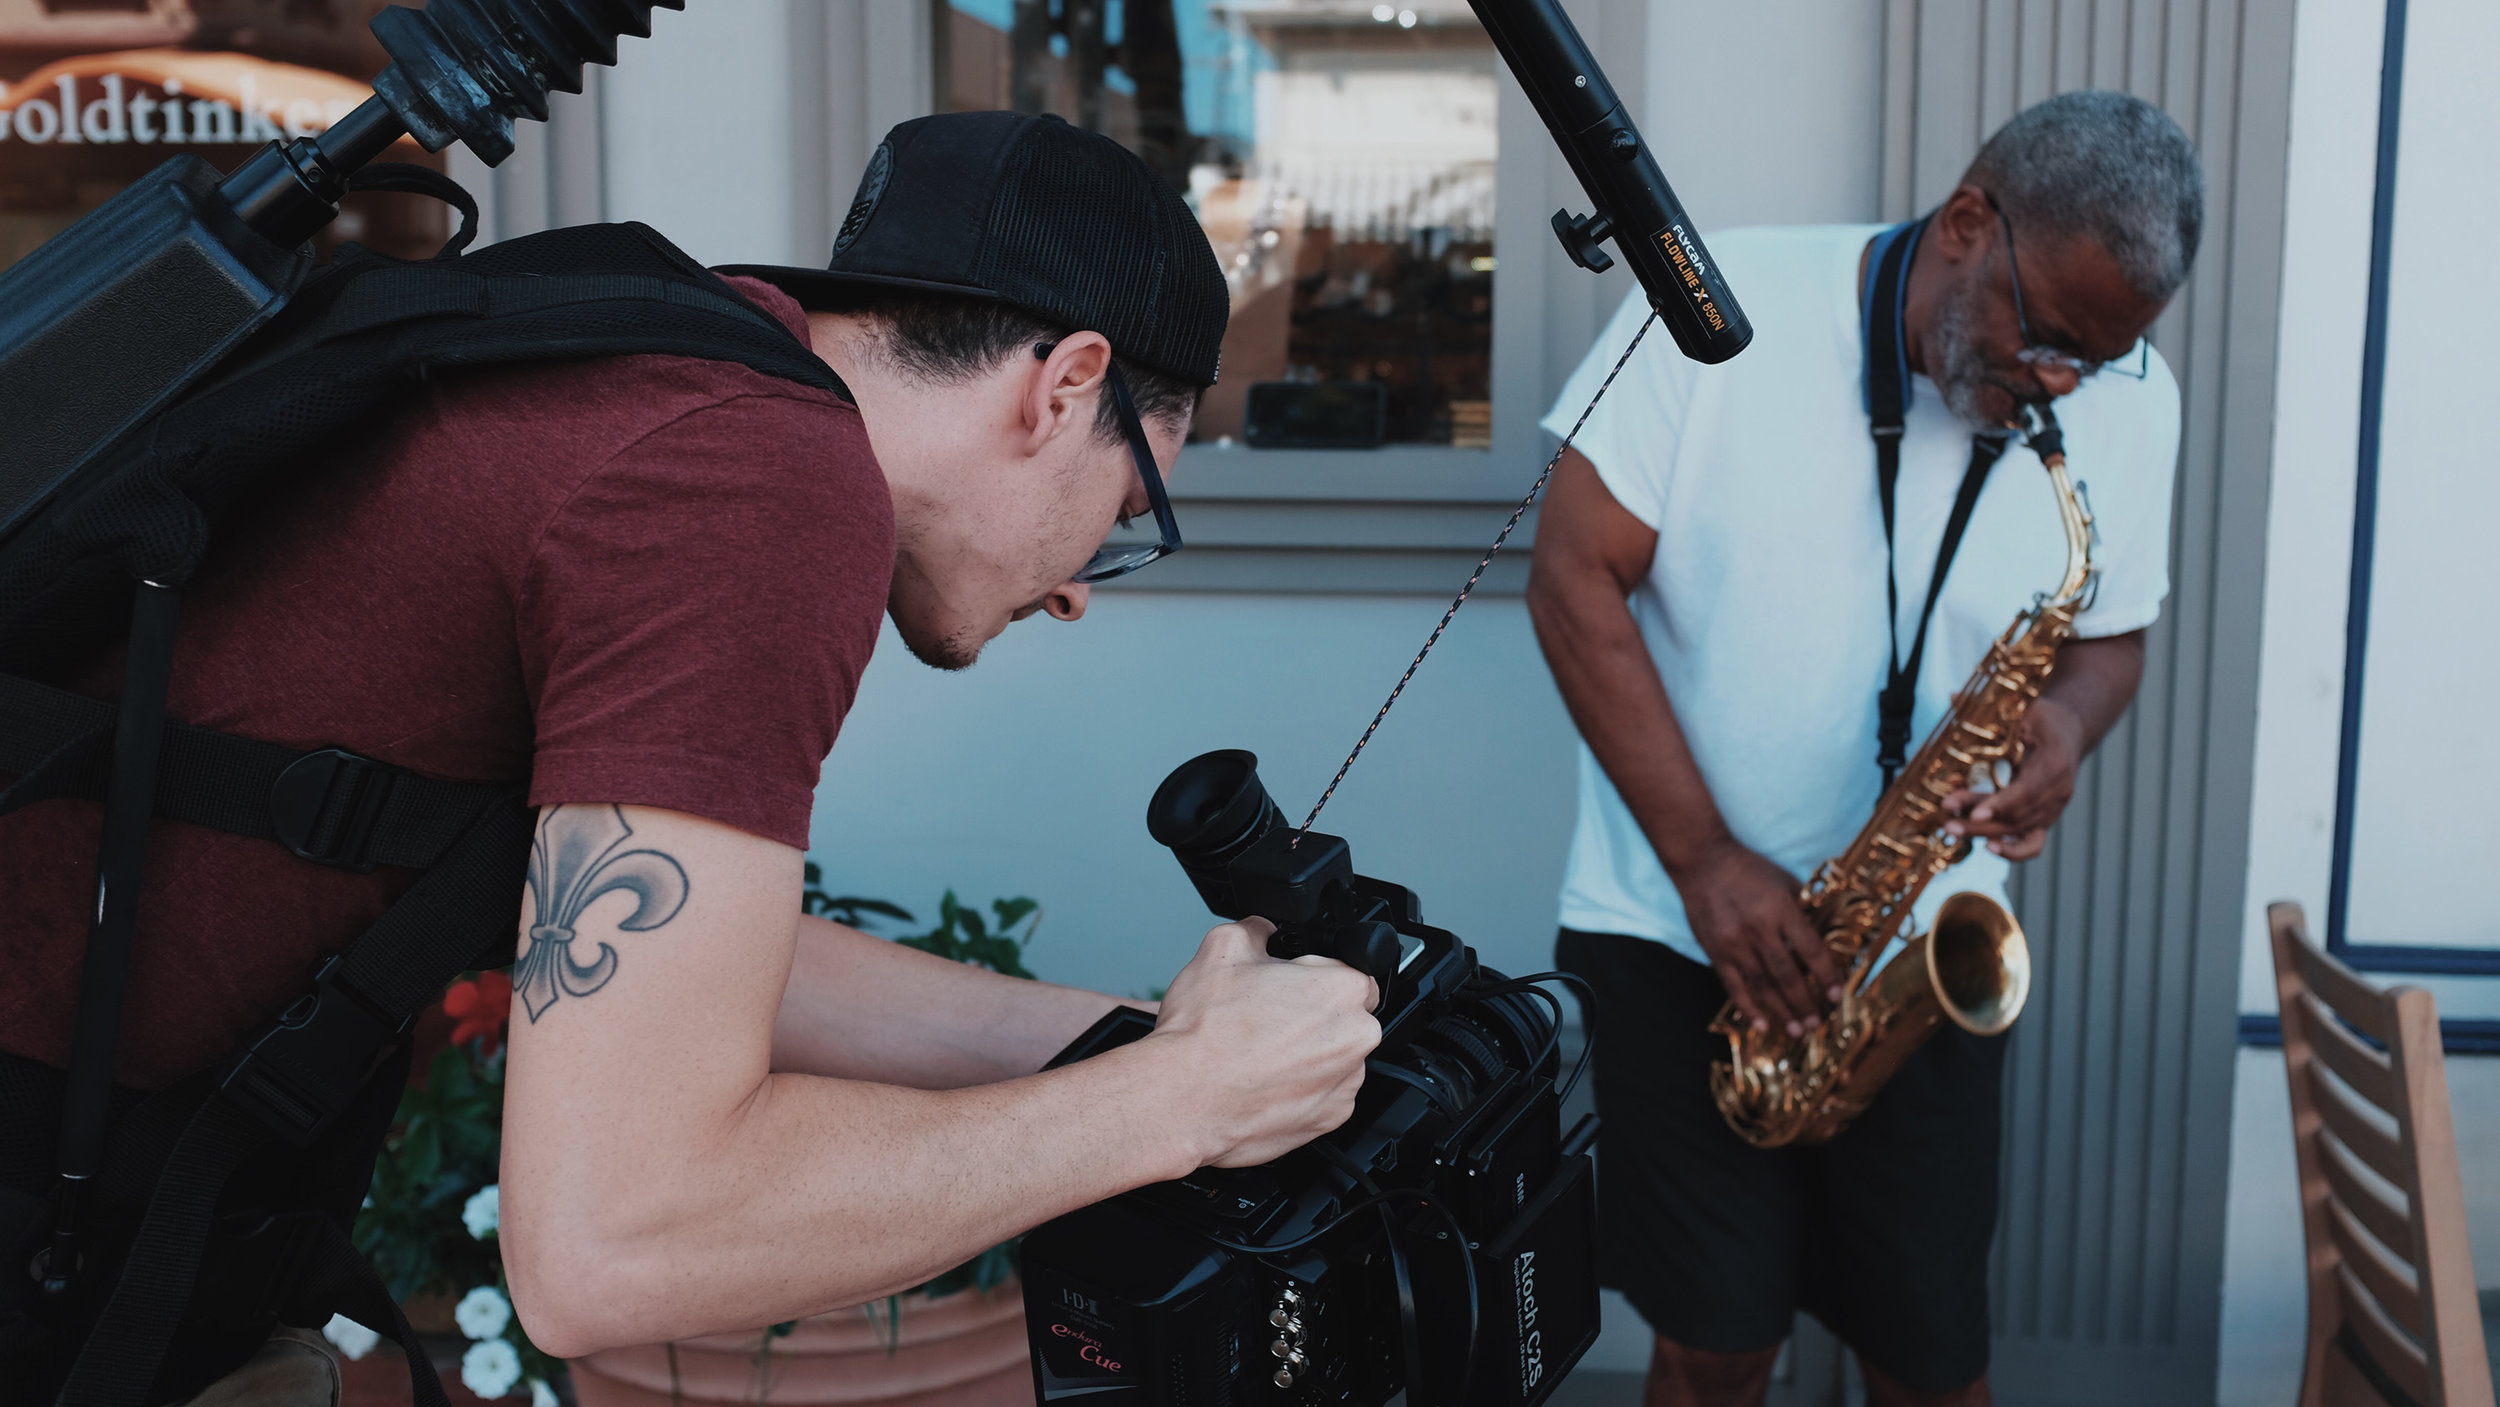 new-jersey-video-production-hologram-visuals-new-york-commercials-ad-branded-content-withum-smith-brown-saxaphone-redbank-ursa-mini.jpg